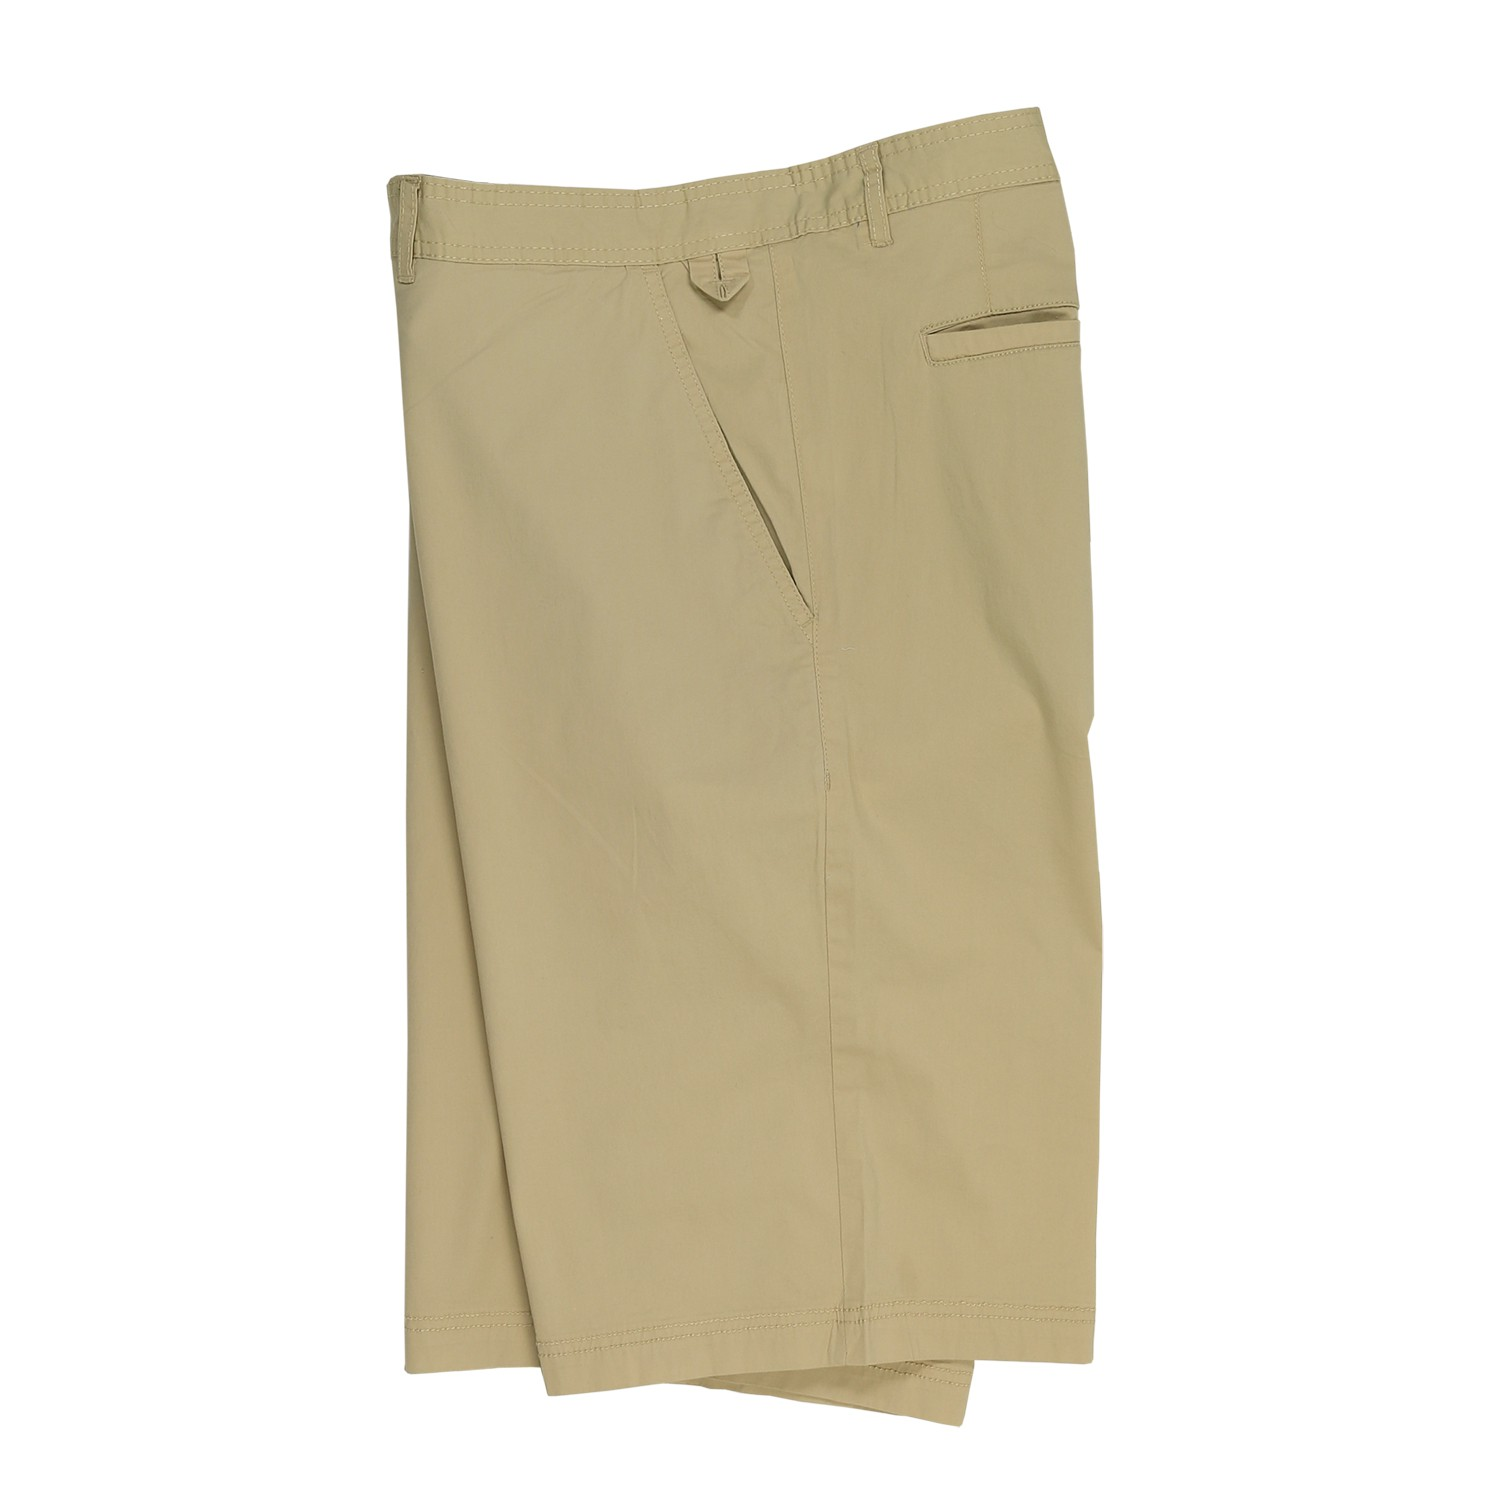 Detail Image to Pants beige by hajo up to size 5XL